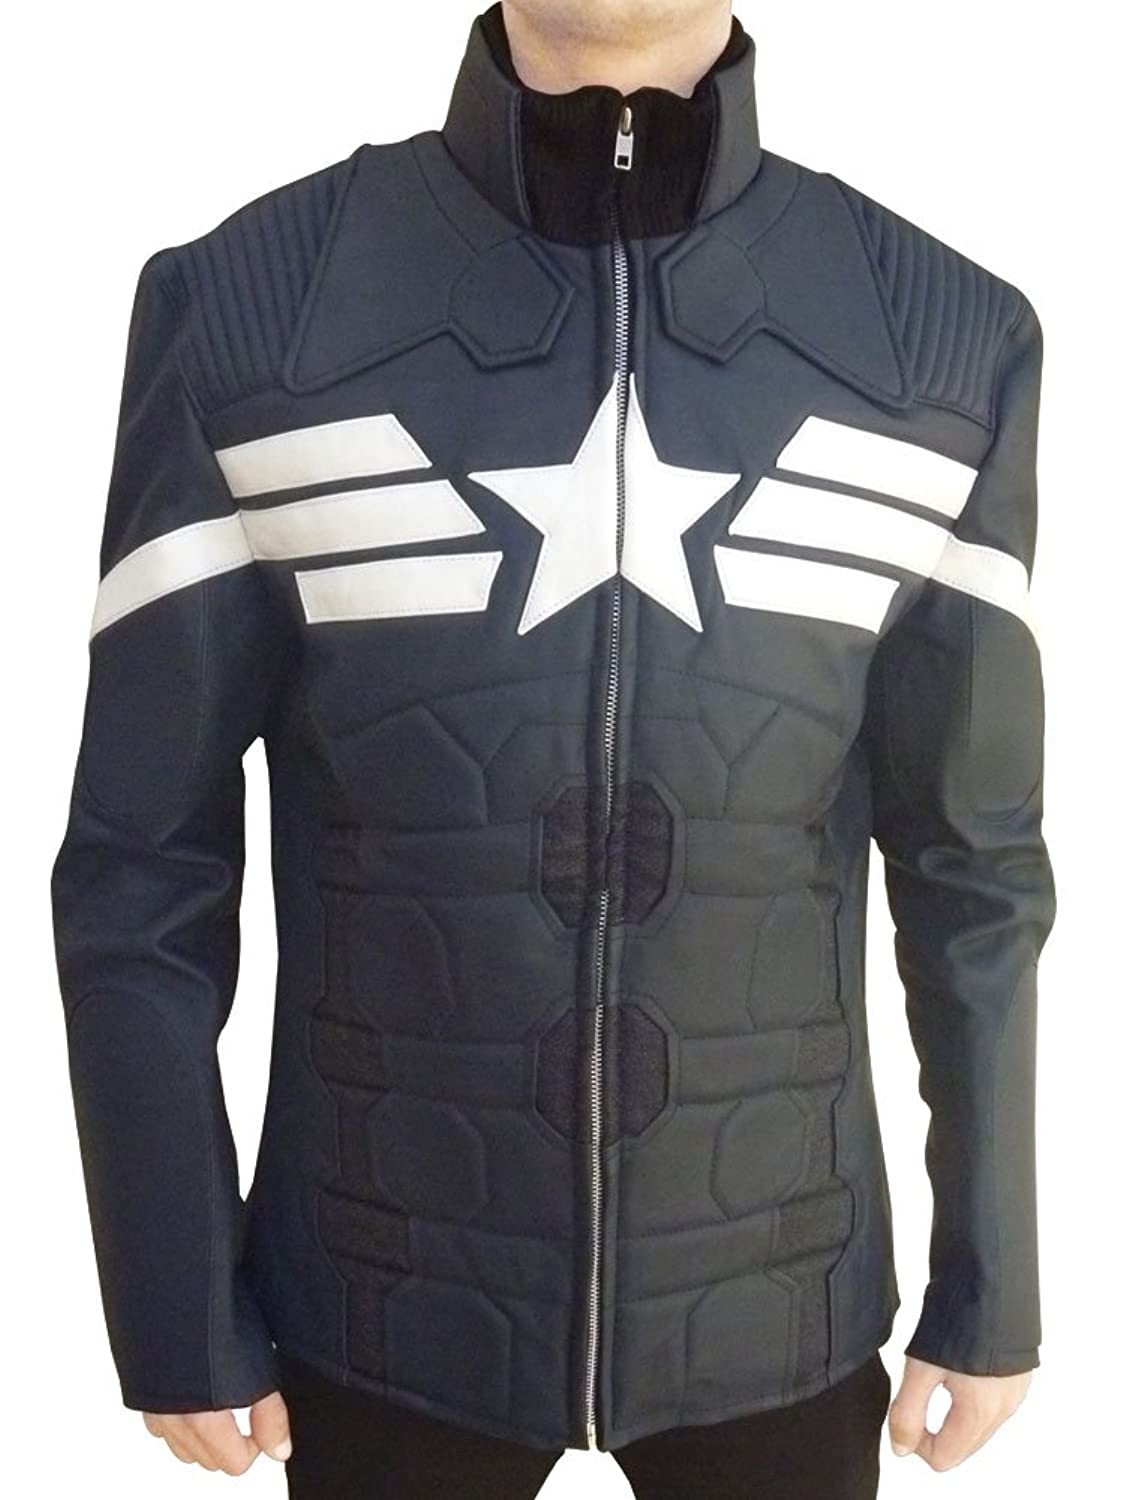 Captain America: The Winter Soldier Men's Genuine Leather Coat - DeluxeAdultCostumes.com